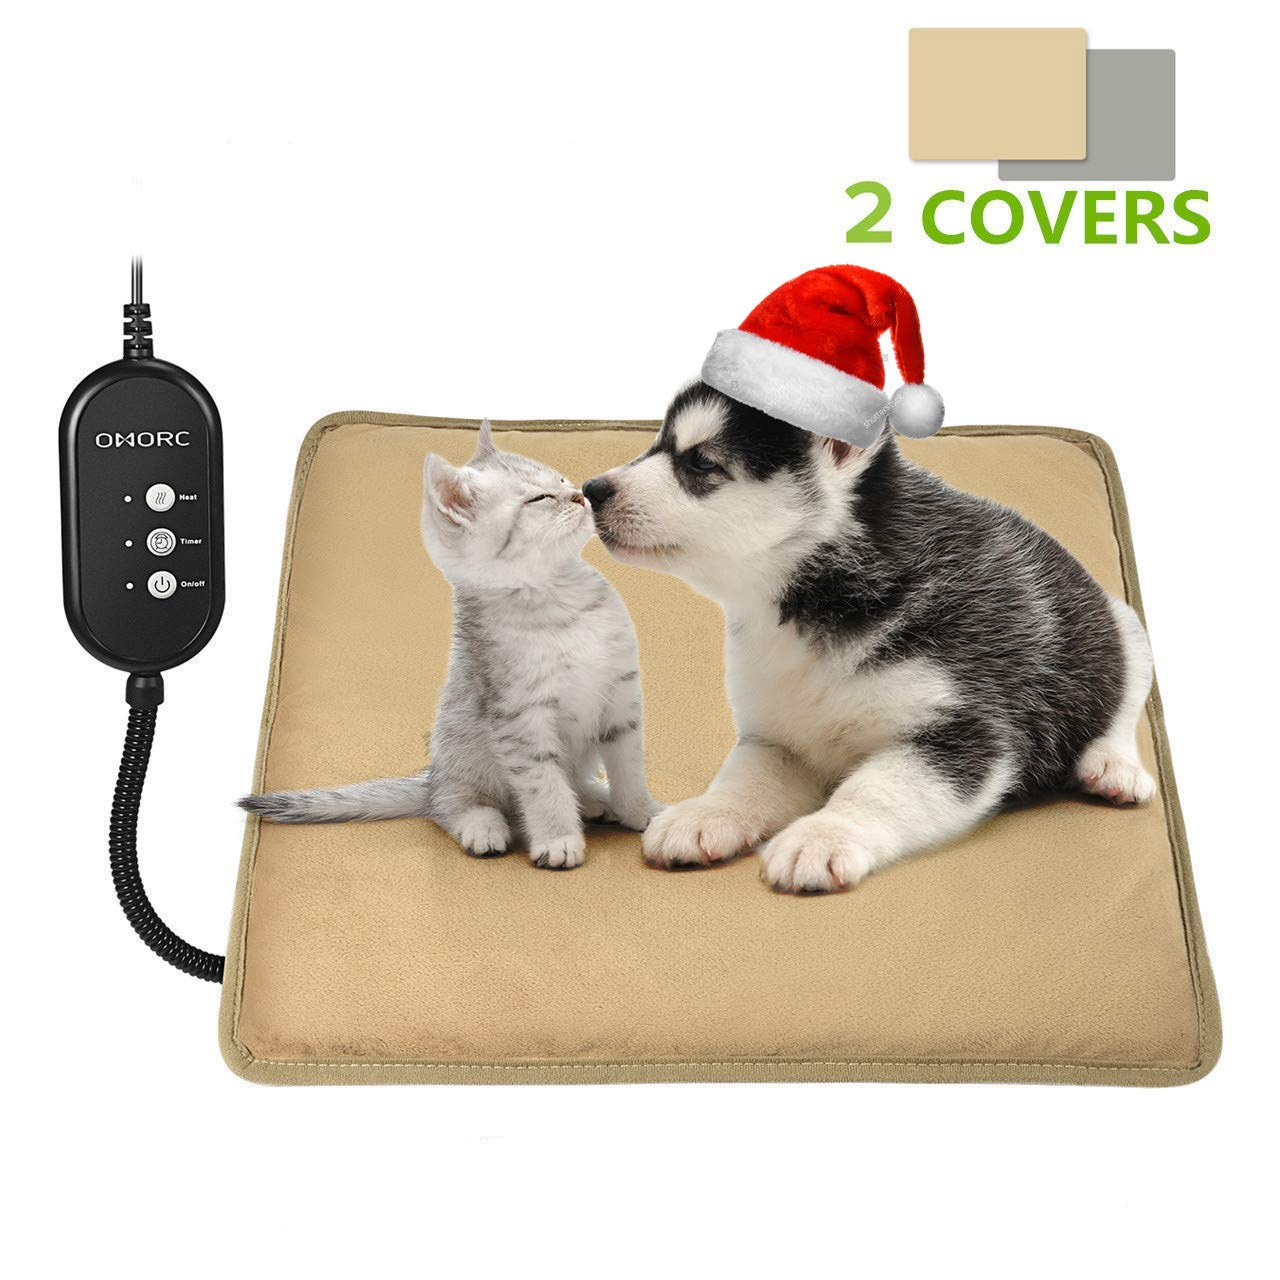 Pet Heating Pad with 2 Replaceable Cover